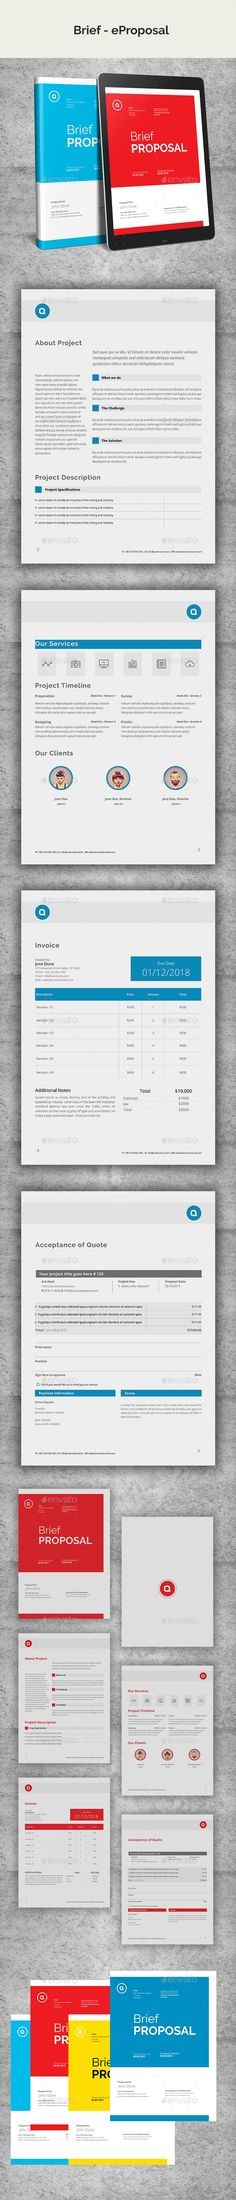 Brief eProposal - #ePublishing Download here: https://graphicriver.net/item/brief-eproposal/19551290?ref=alena994